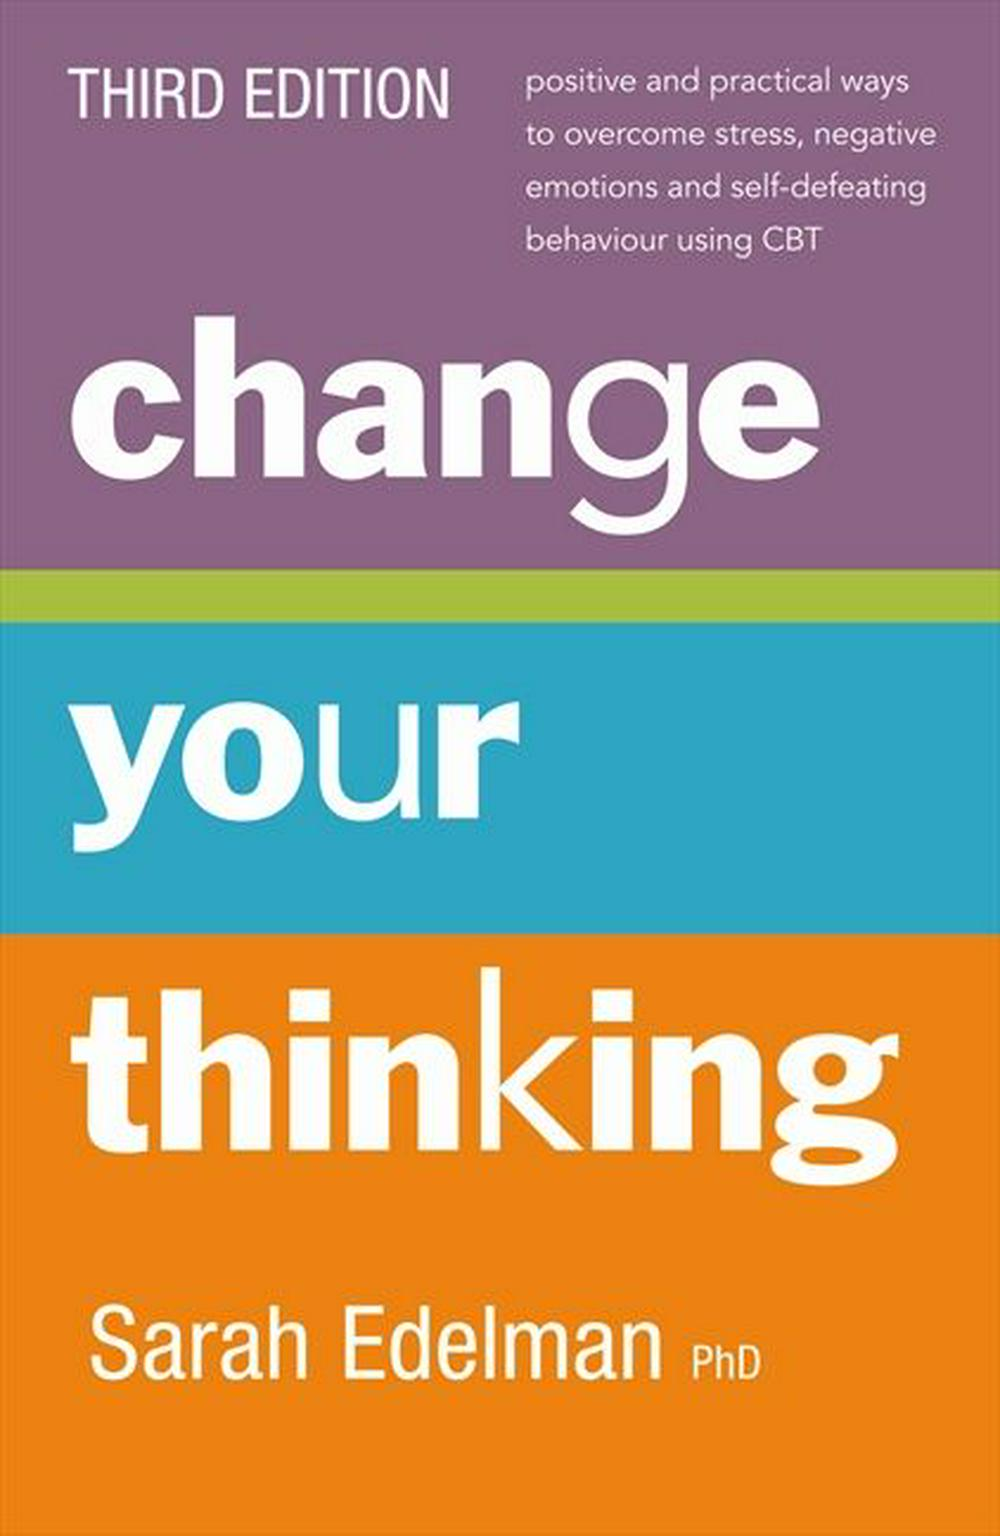 Change Your Thinking by Sarah Edelman, ISBN: 9780733332241